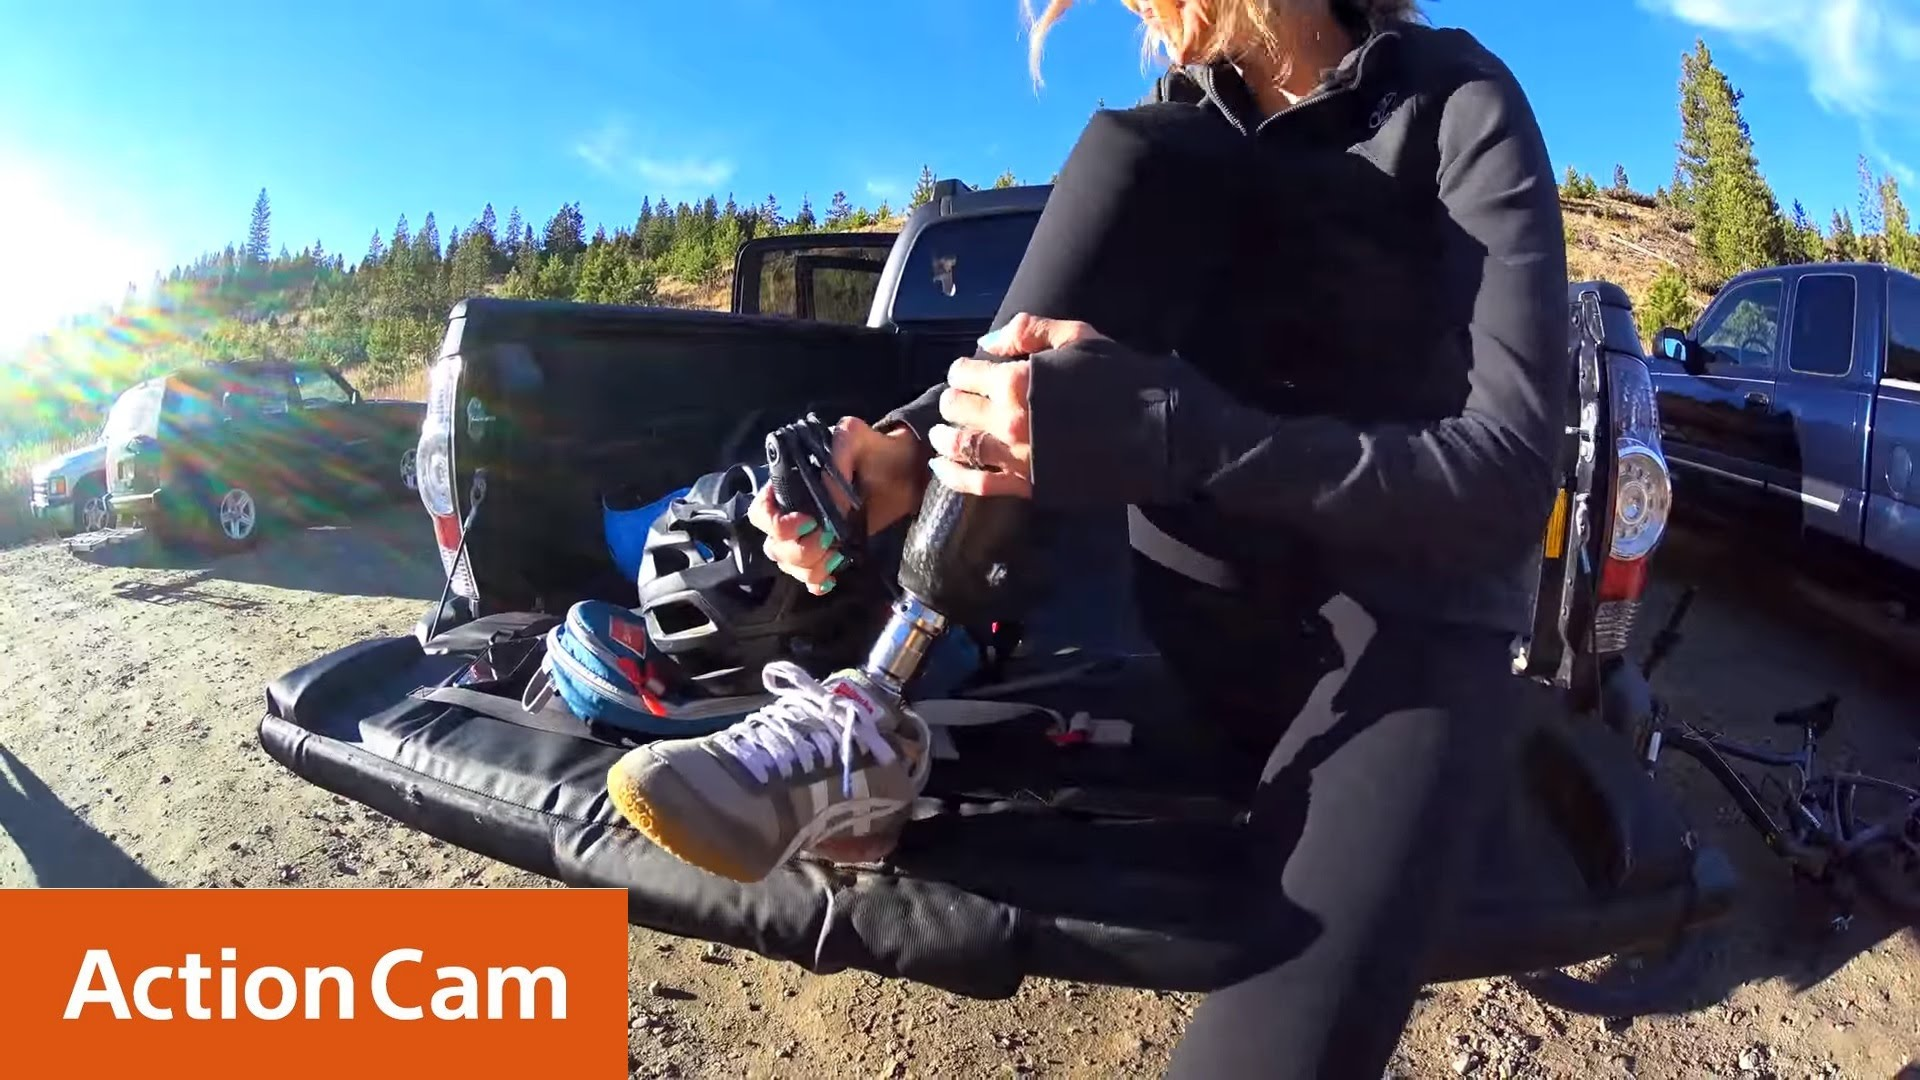 Action Cam | Amy Purdy – Adaptive Mountain Biking Camp 4K | Sony